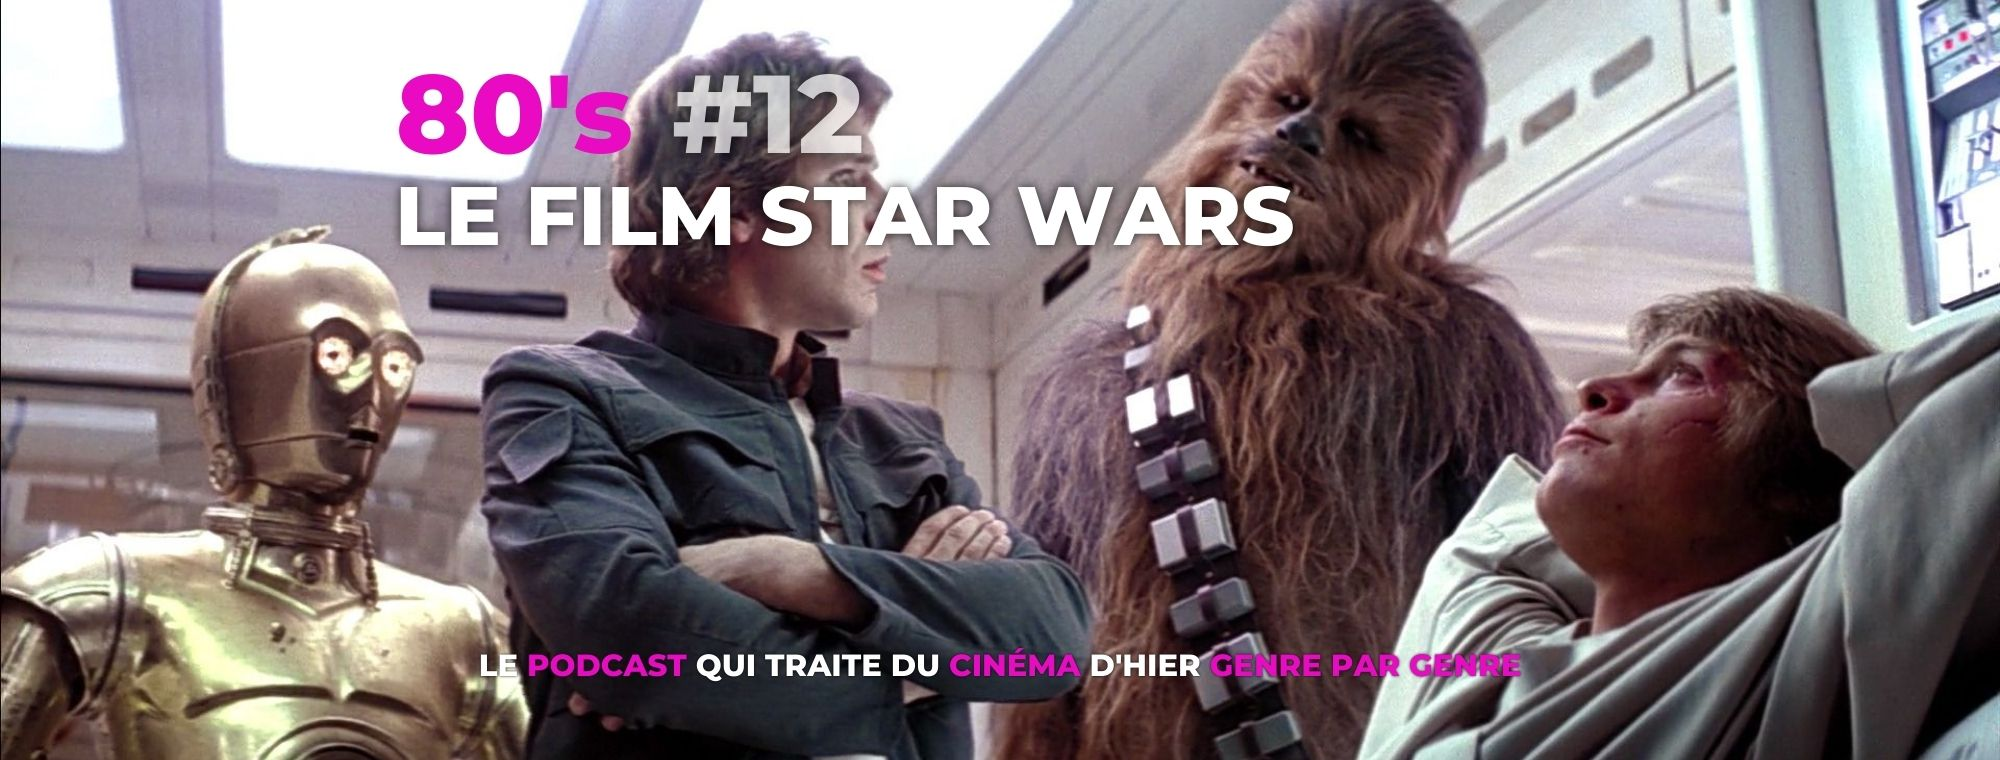 Parlons Péloches - 80's #12 Le film Star Wars